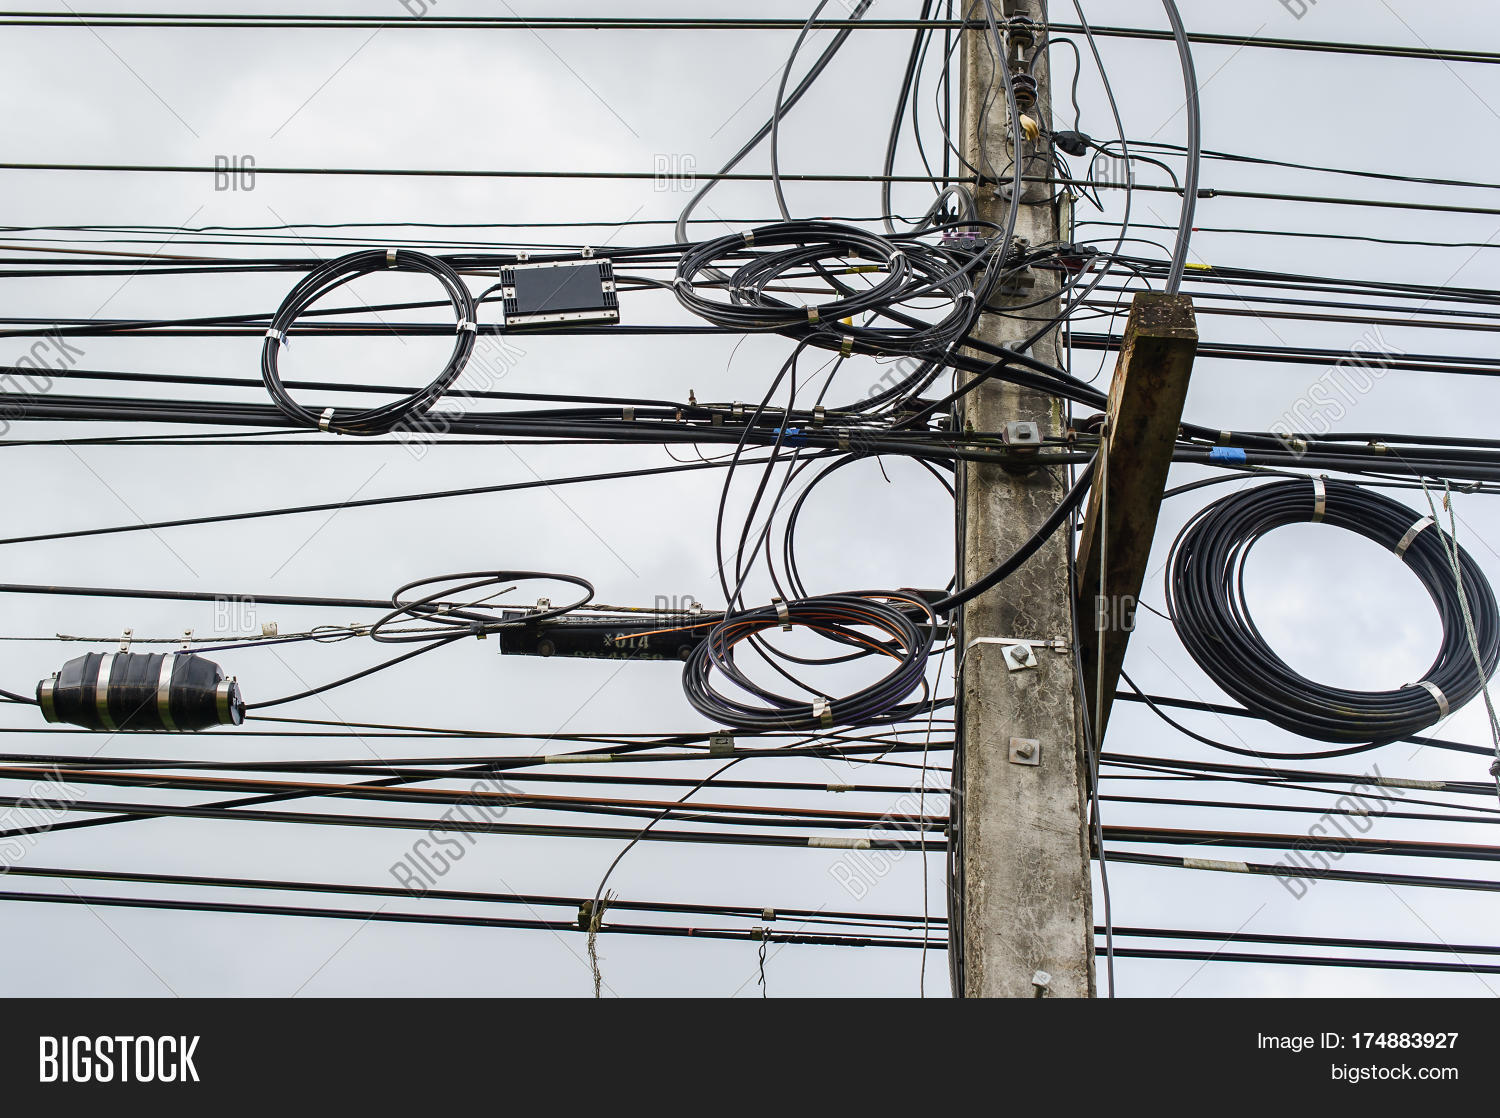 hight resolution of high voltage power pole with wires tangled wire and cable clutter potential danger from